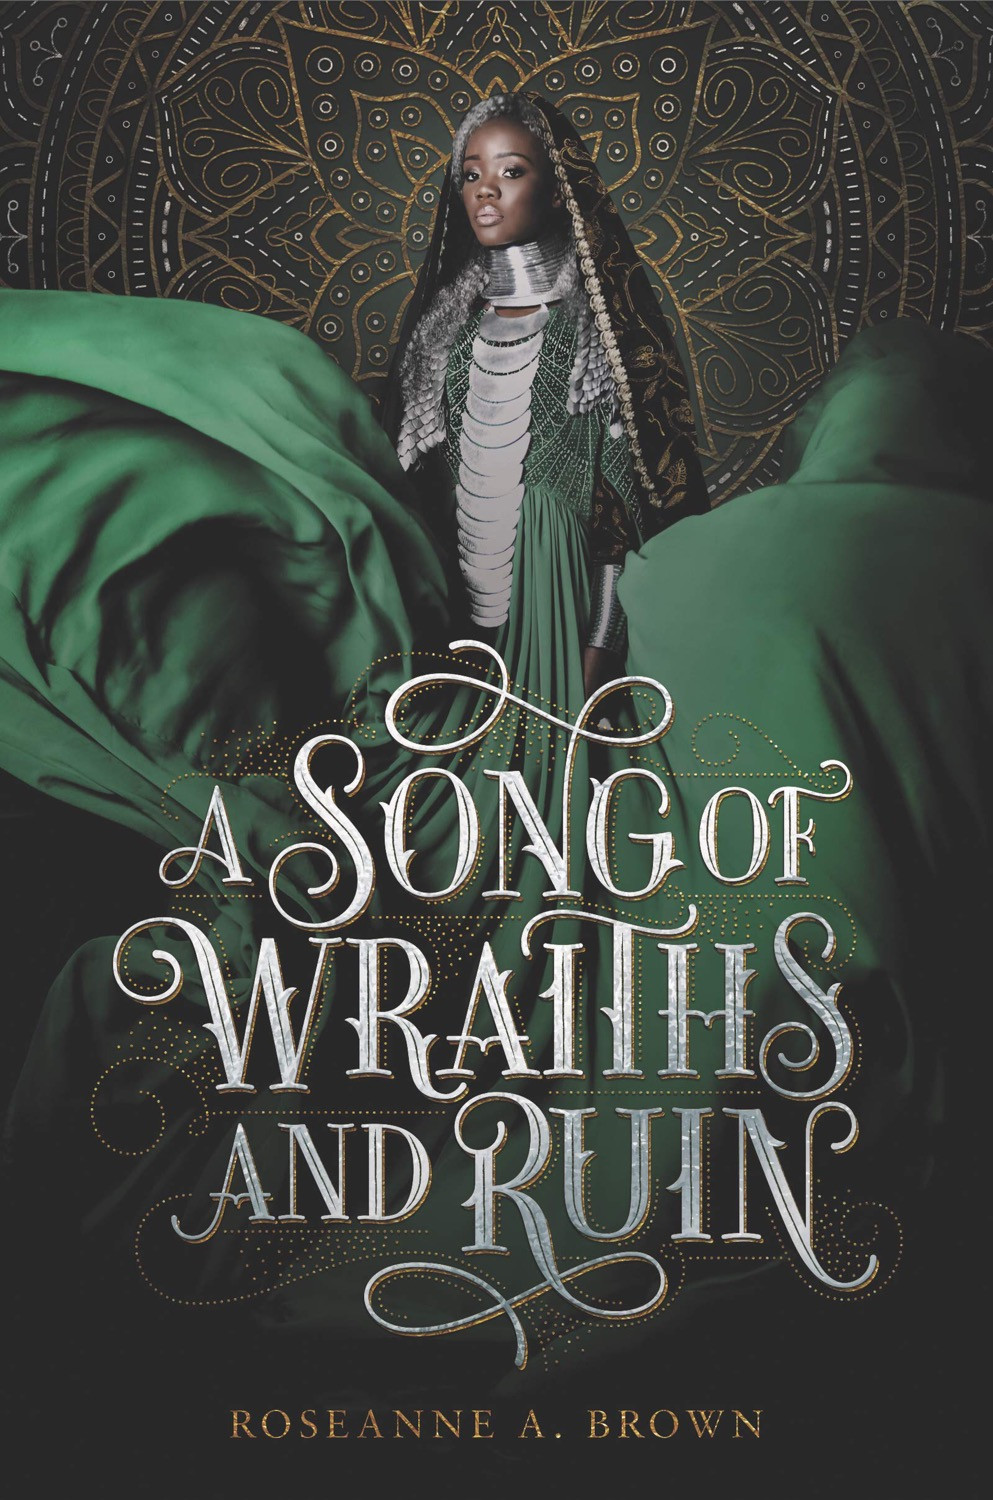 A Song of Wraiths and Ruin by Roseanne A. Brown - Book Cover | 18 YA Books Out In June 2020